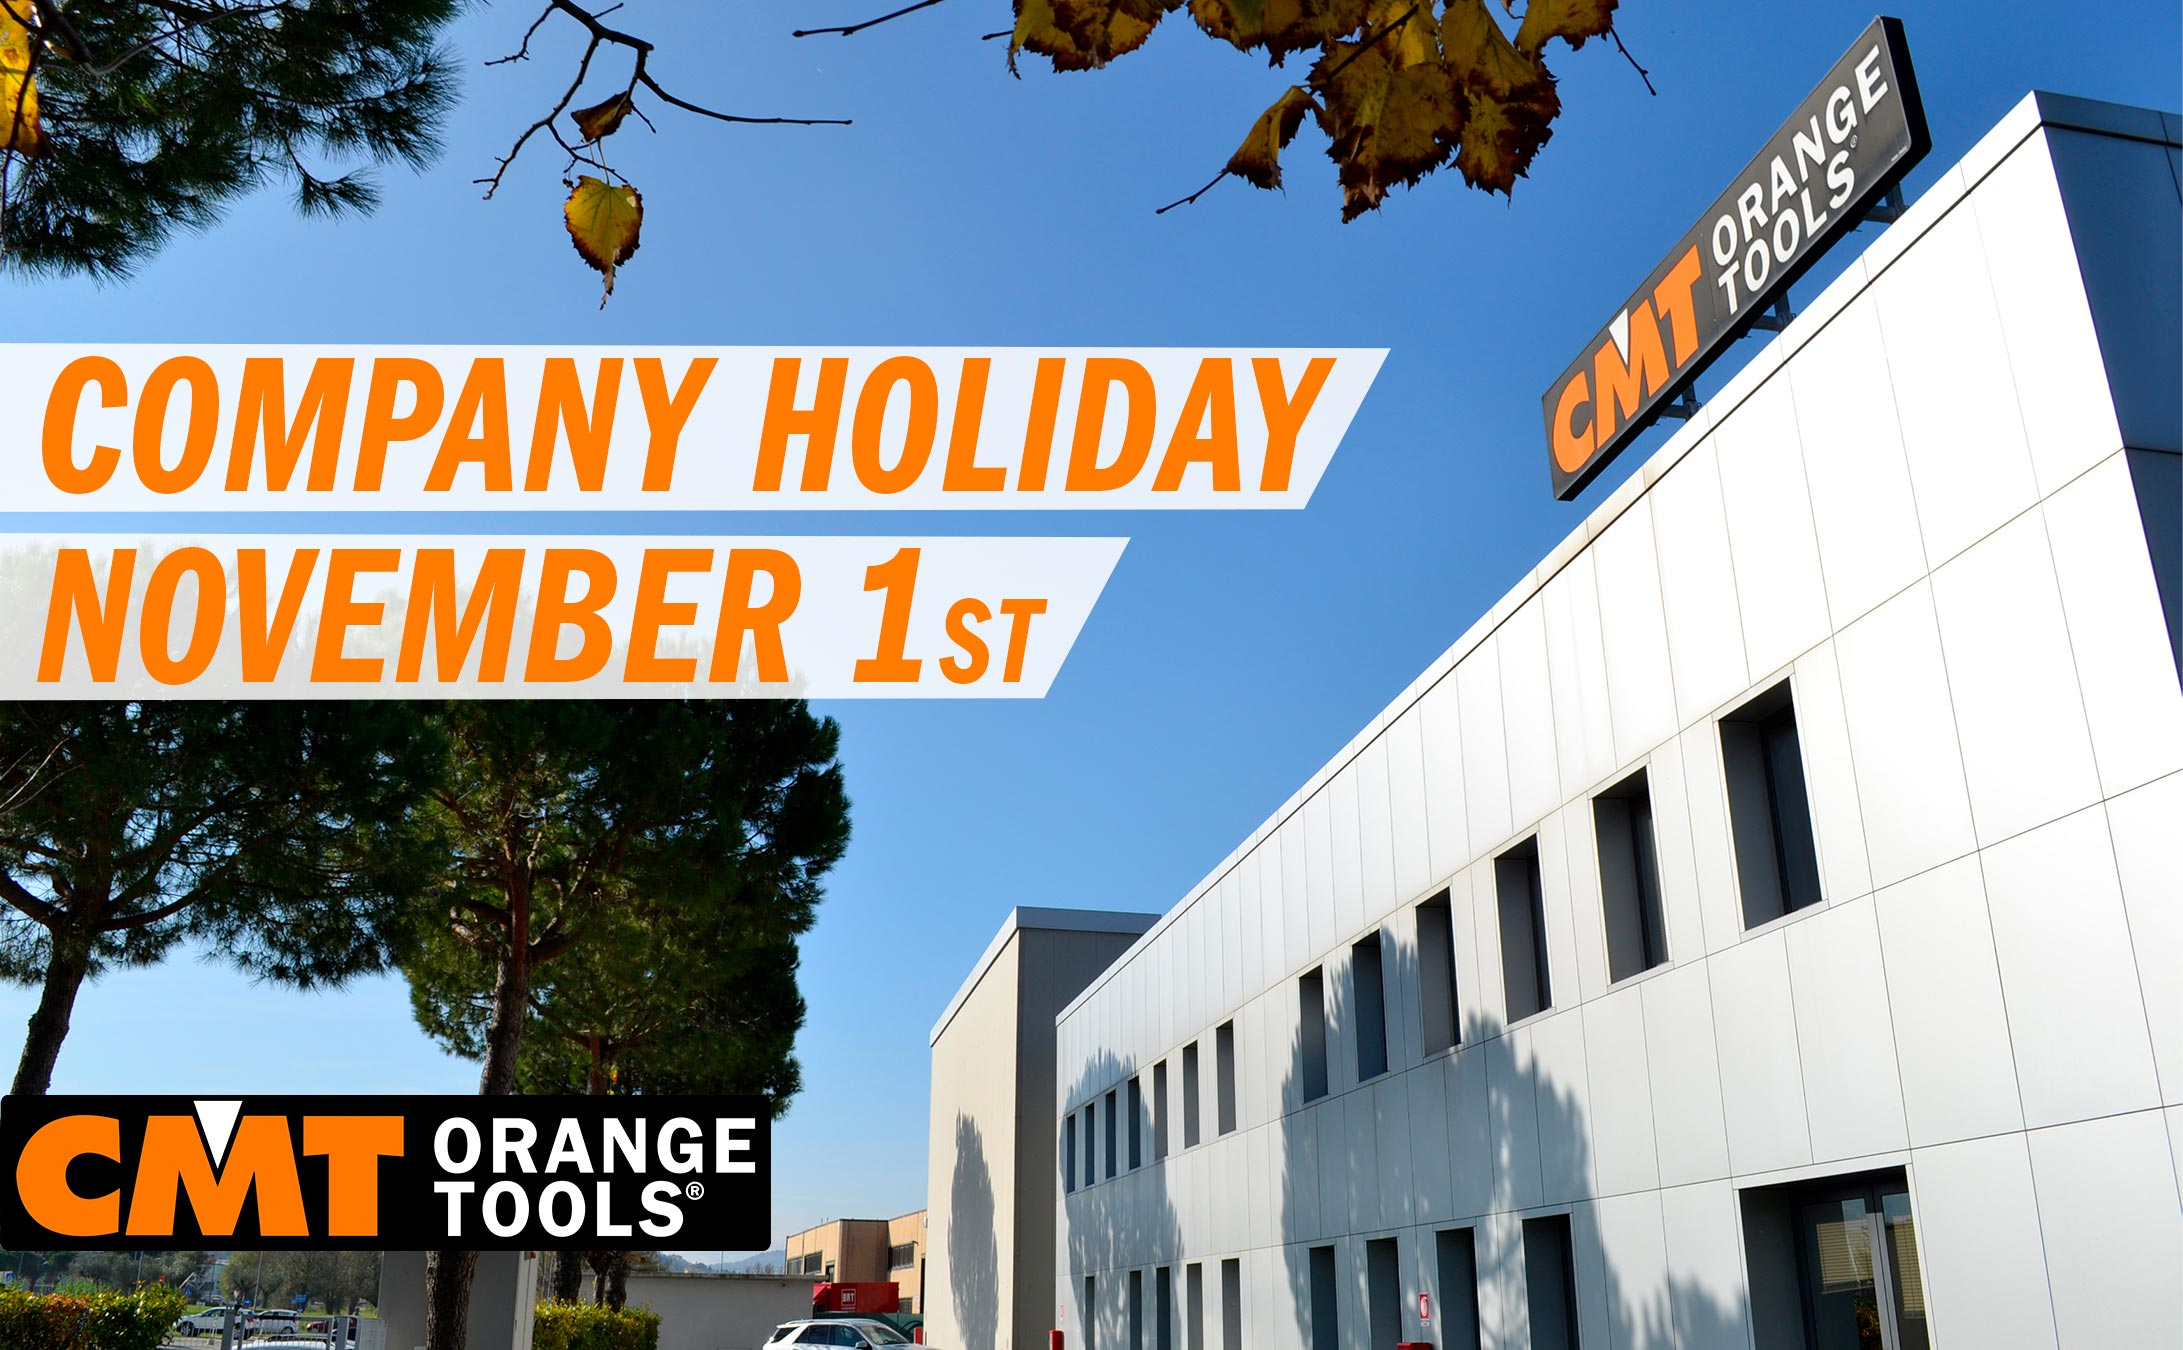 Company Holiday November 1st